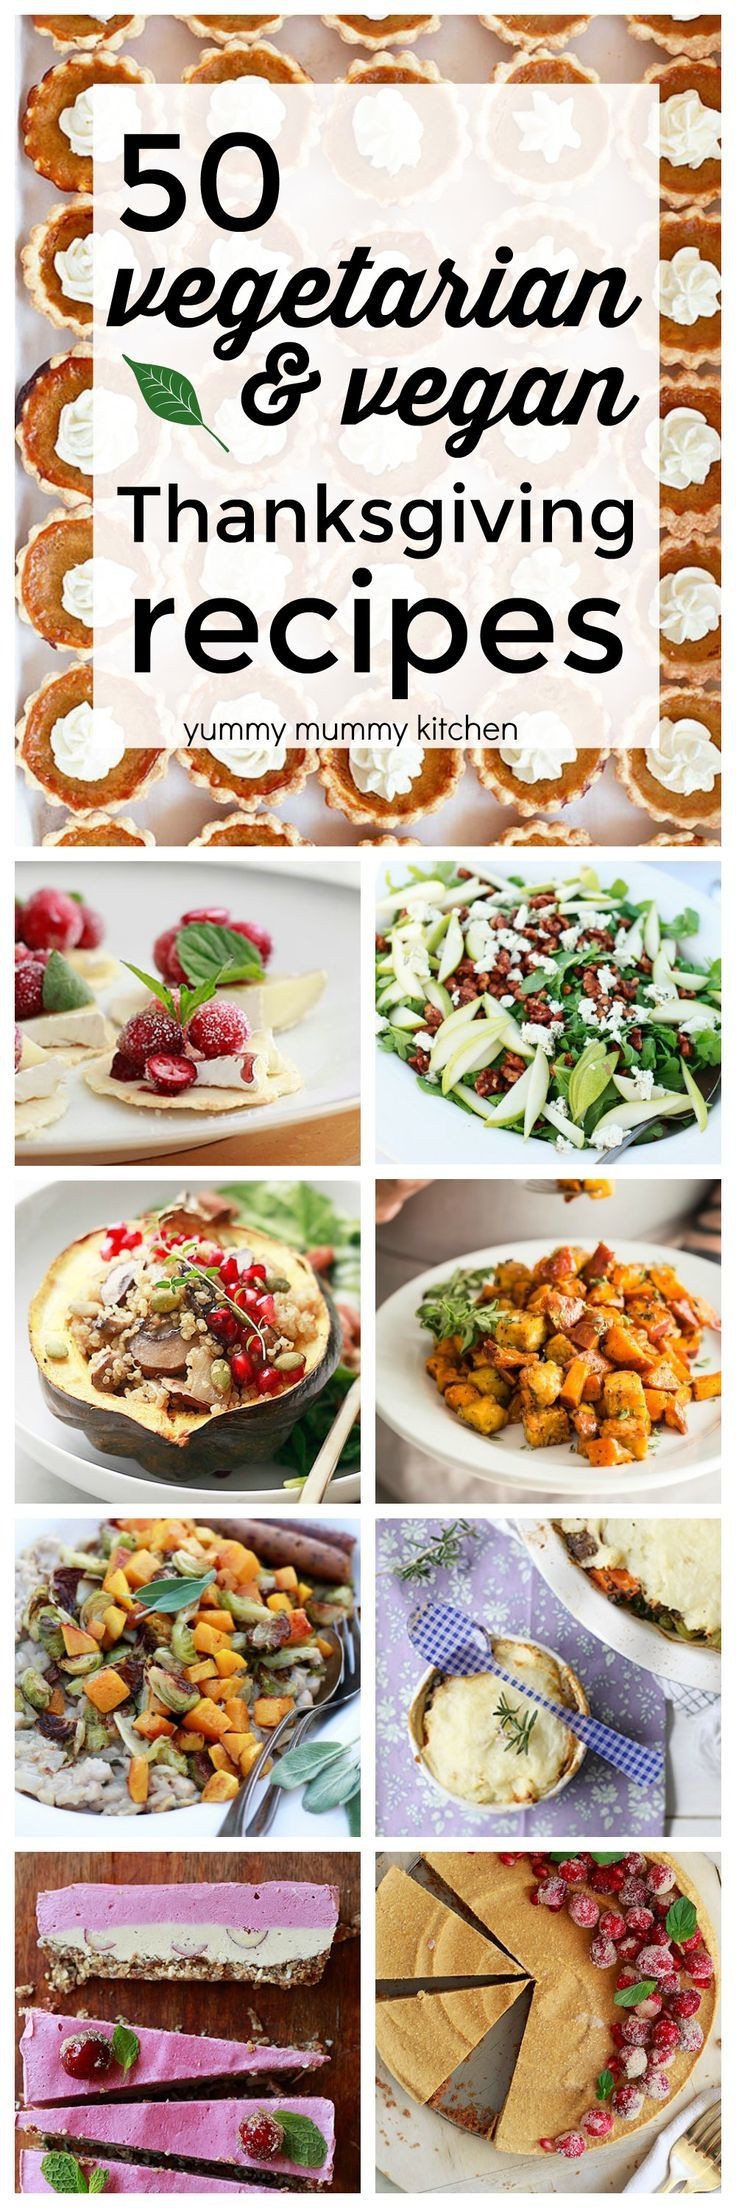 Vegan Thanksgiving Ideas  Best 25 Ve arian thanksgiving ideas on Pinterest